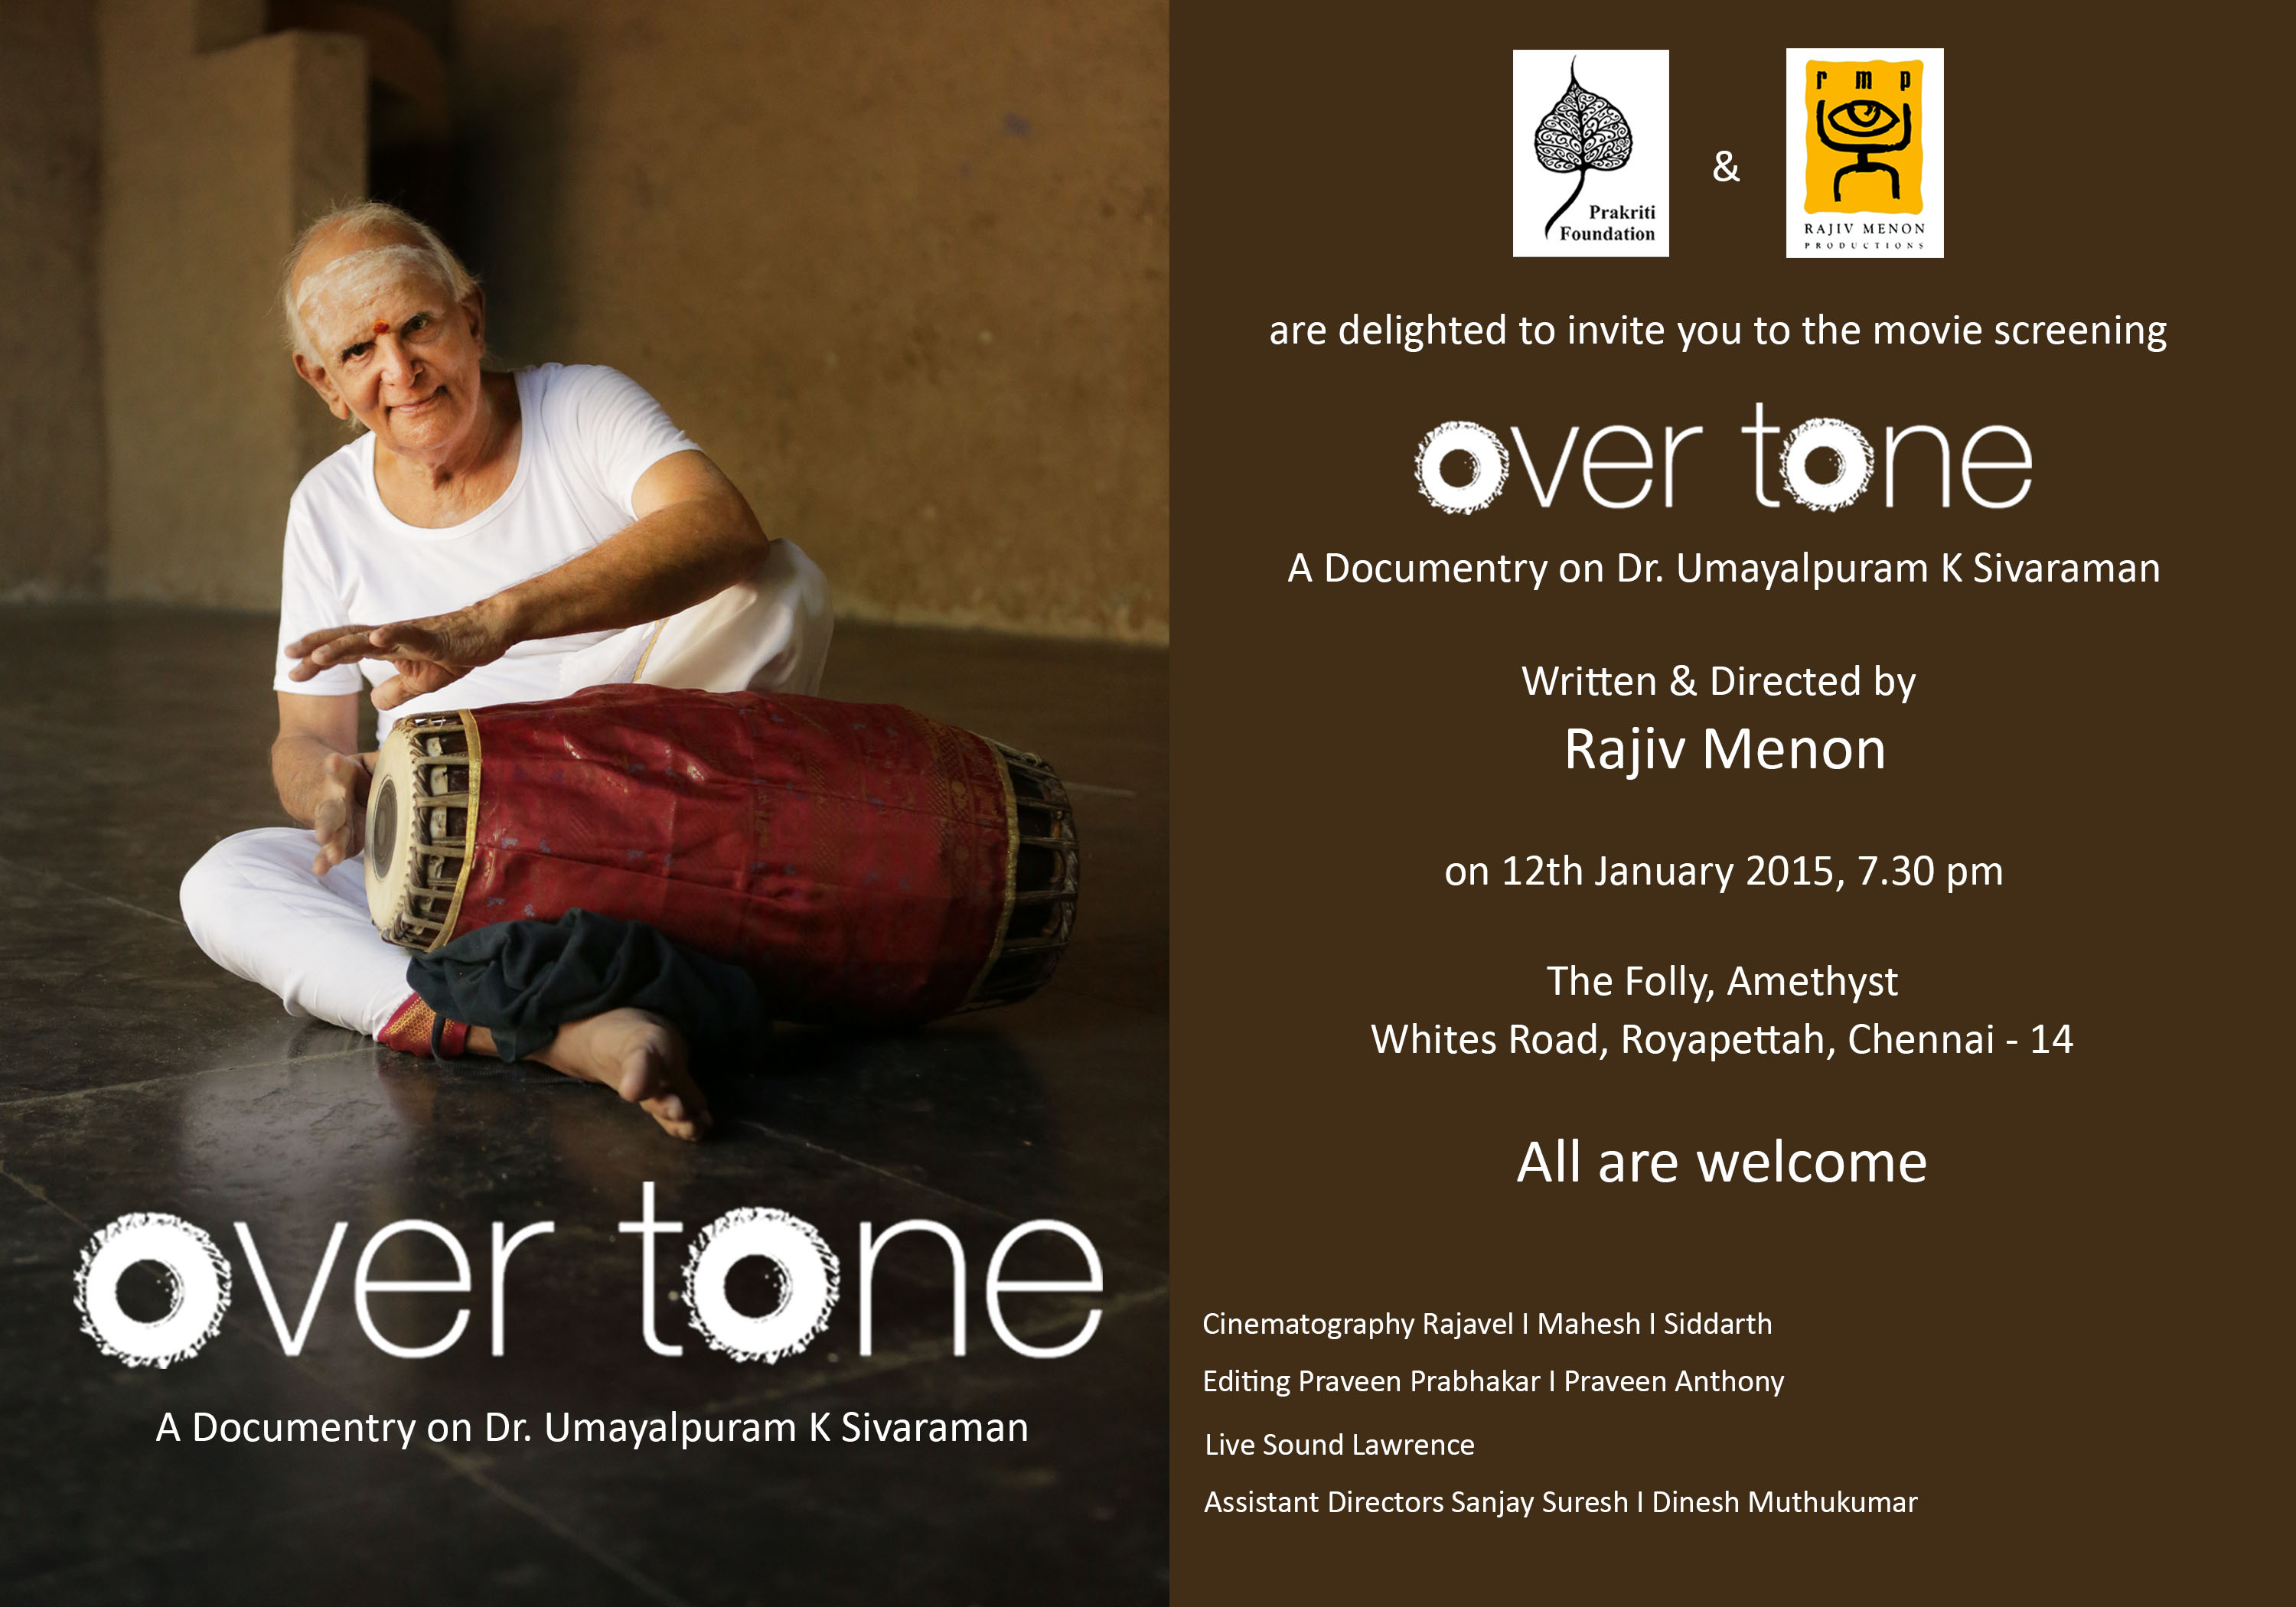 Over Tone - Film on Umayalpuram K Sivaraman